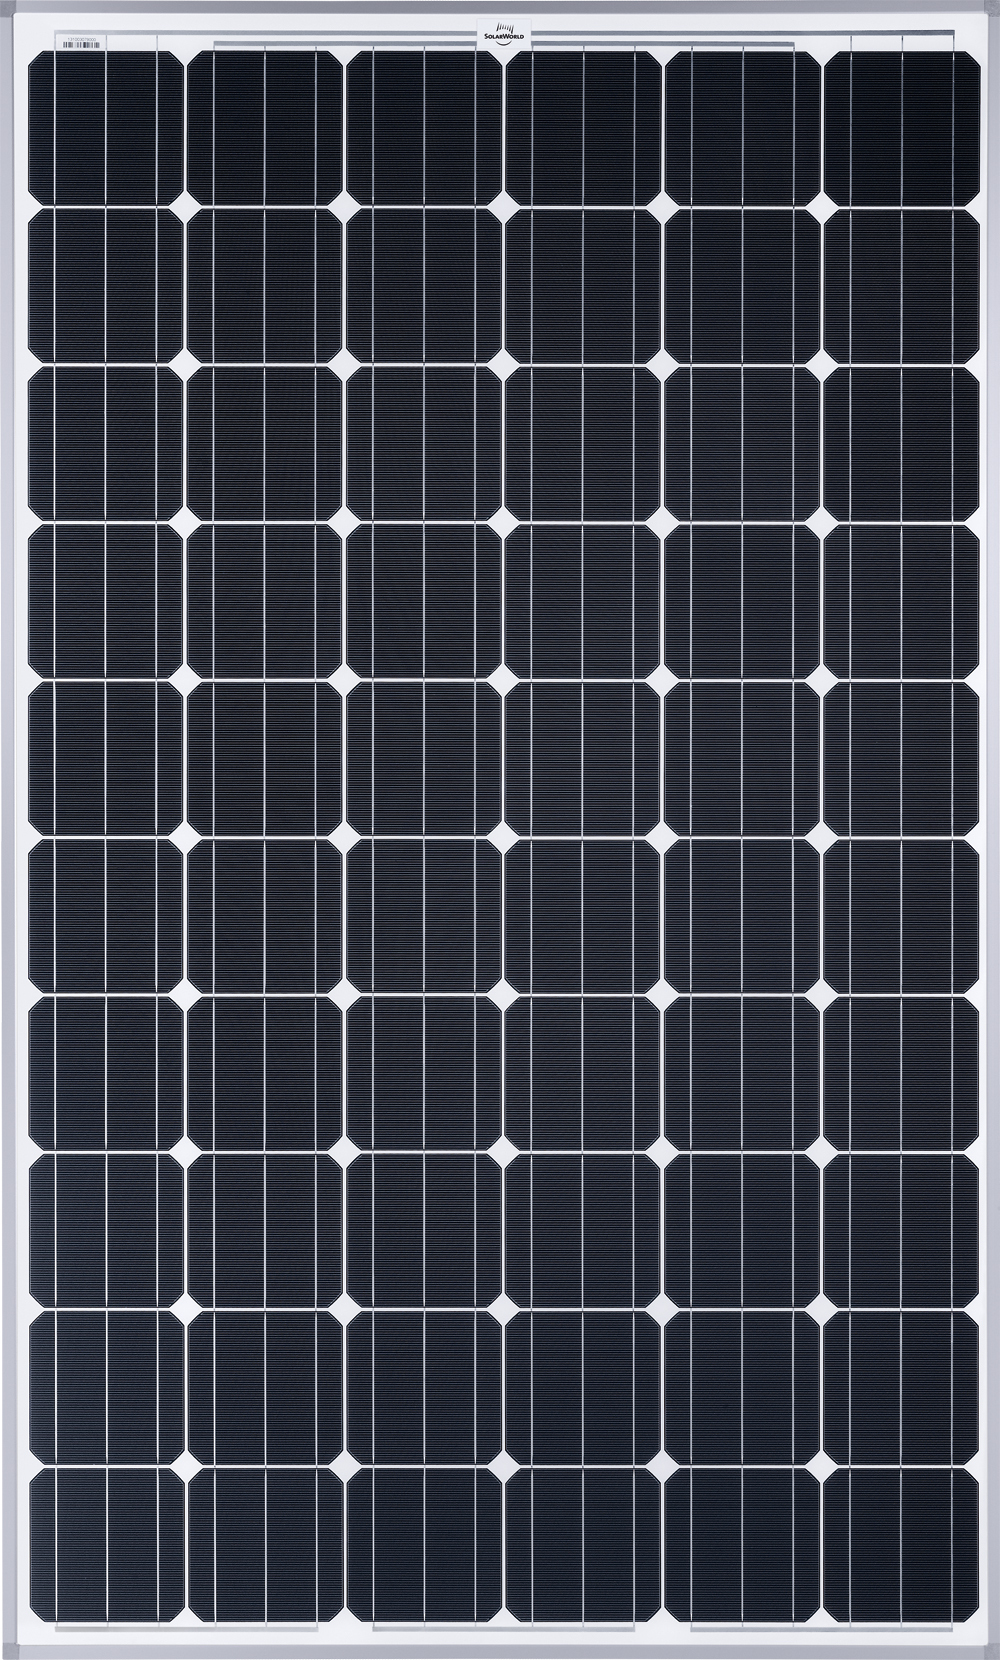 SolarWorld is producing 280-watt-peak, 60-cell Sunmodule solar panels at unprecedented commercial volumes. (Photo: Business Wire)